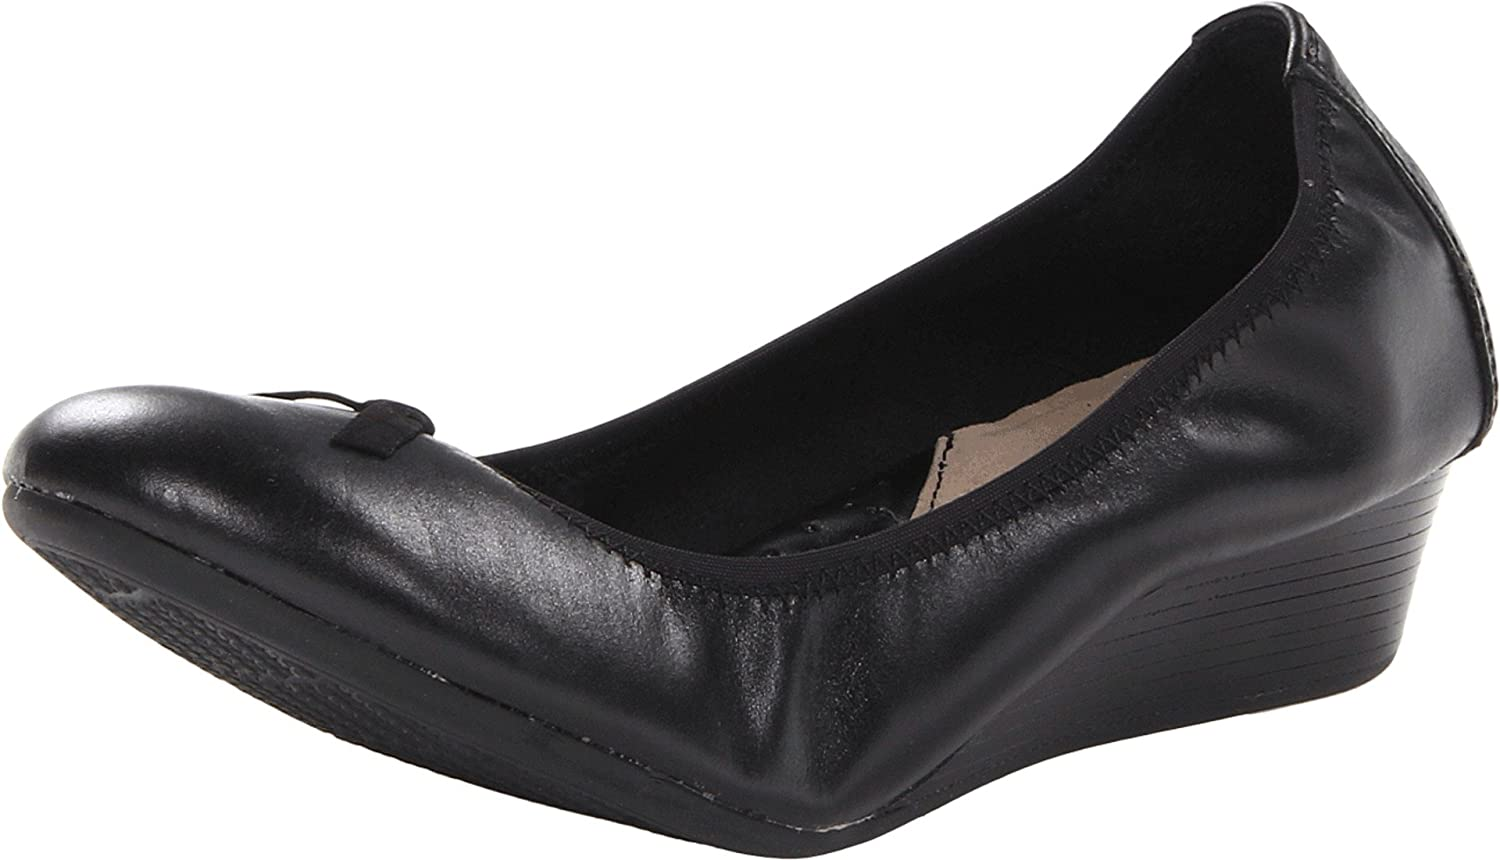 Hush Puppies Women's Candid Ballet Flat